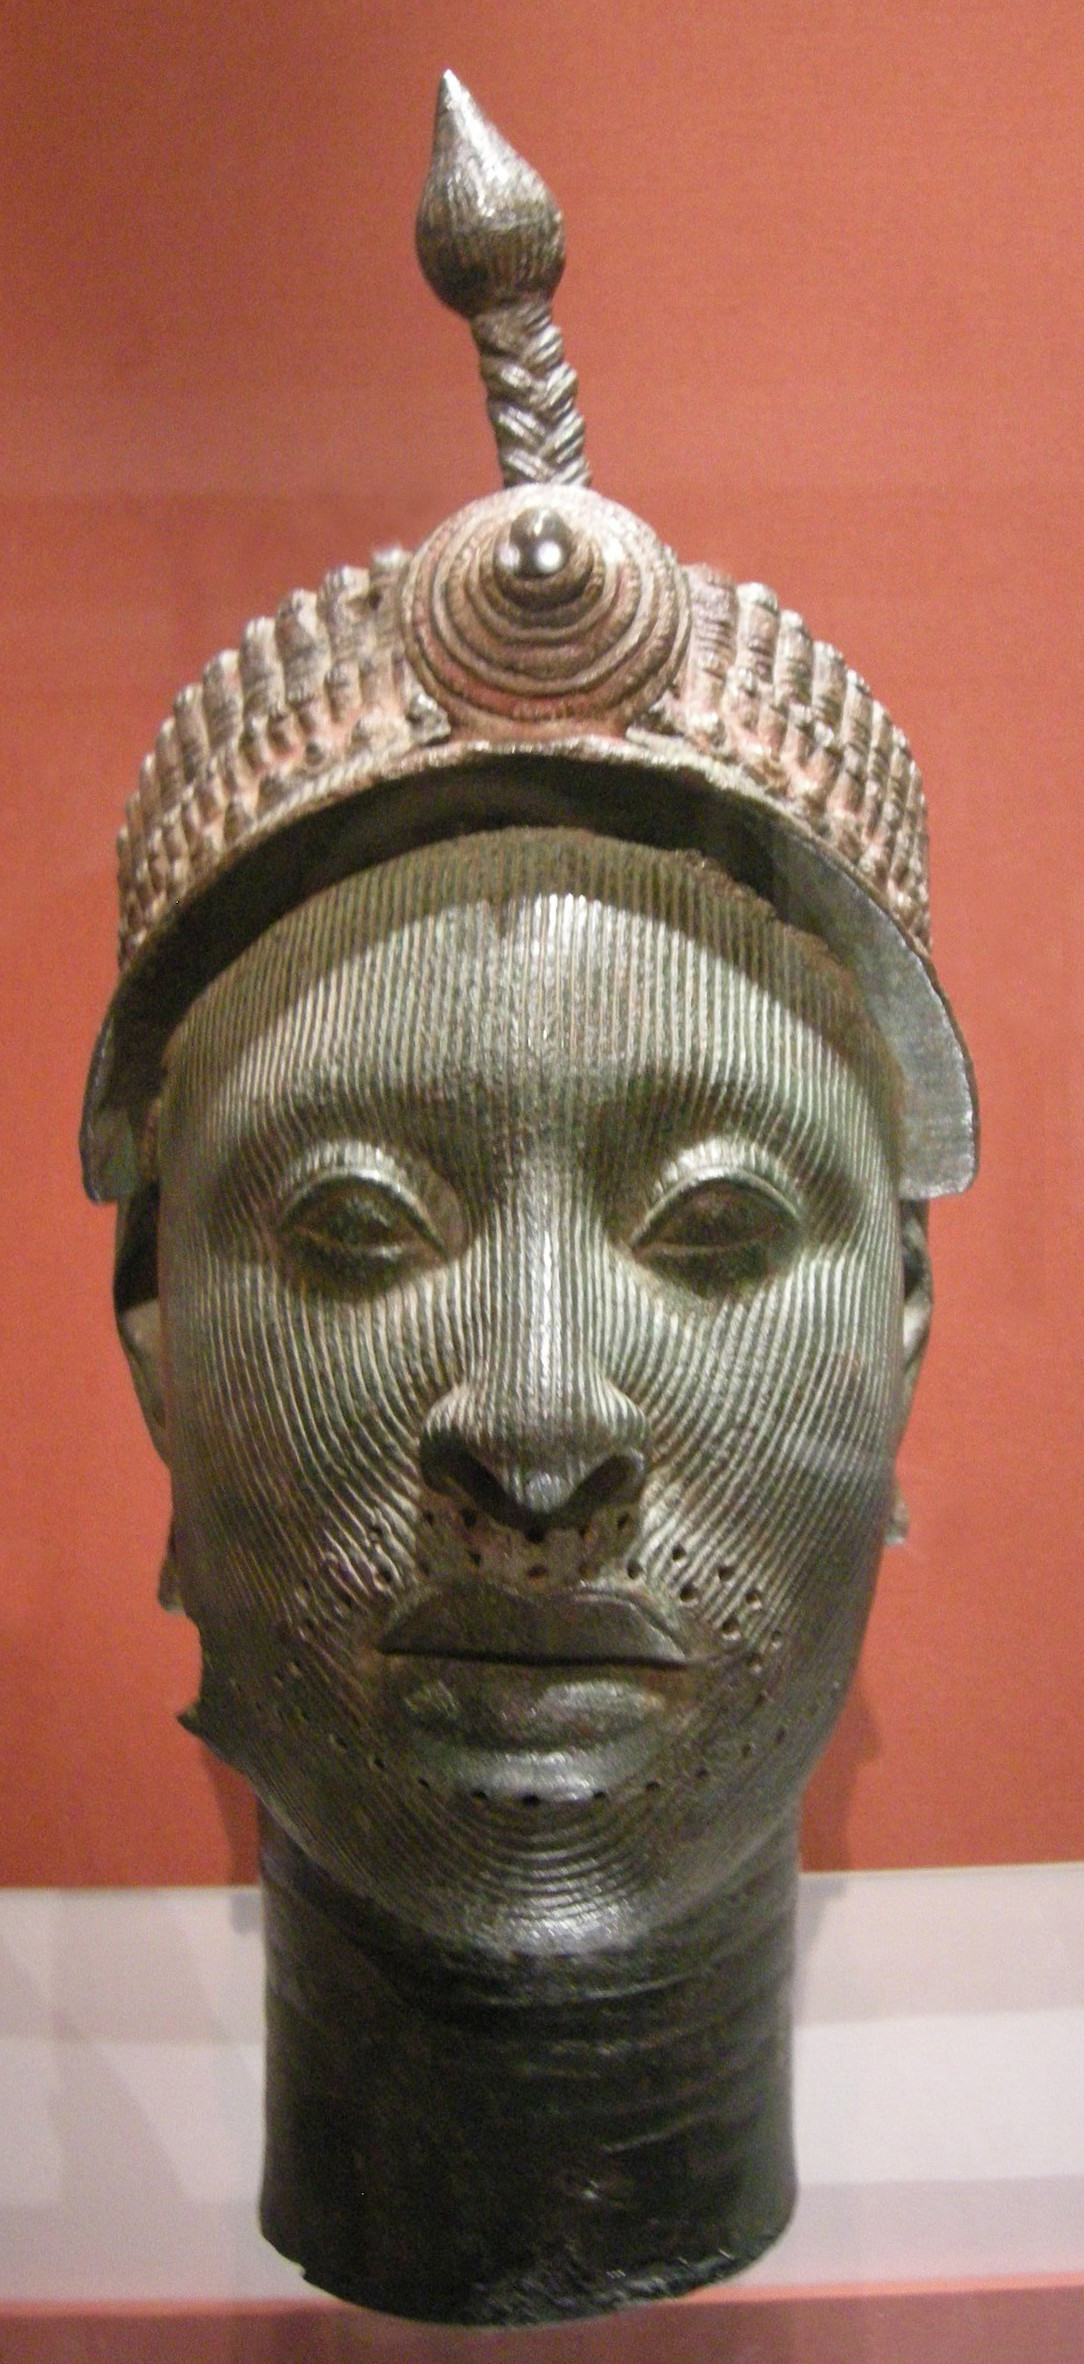 identifying lady head vases of bronze head from ife wikipedia in arte yoruba nigeria testa da ife 12 15mo secolo jpg